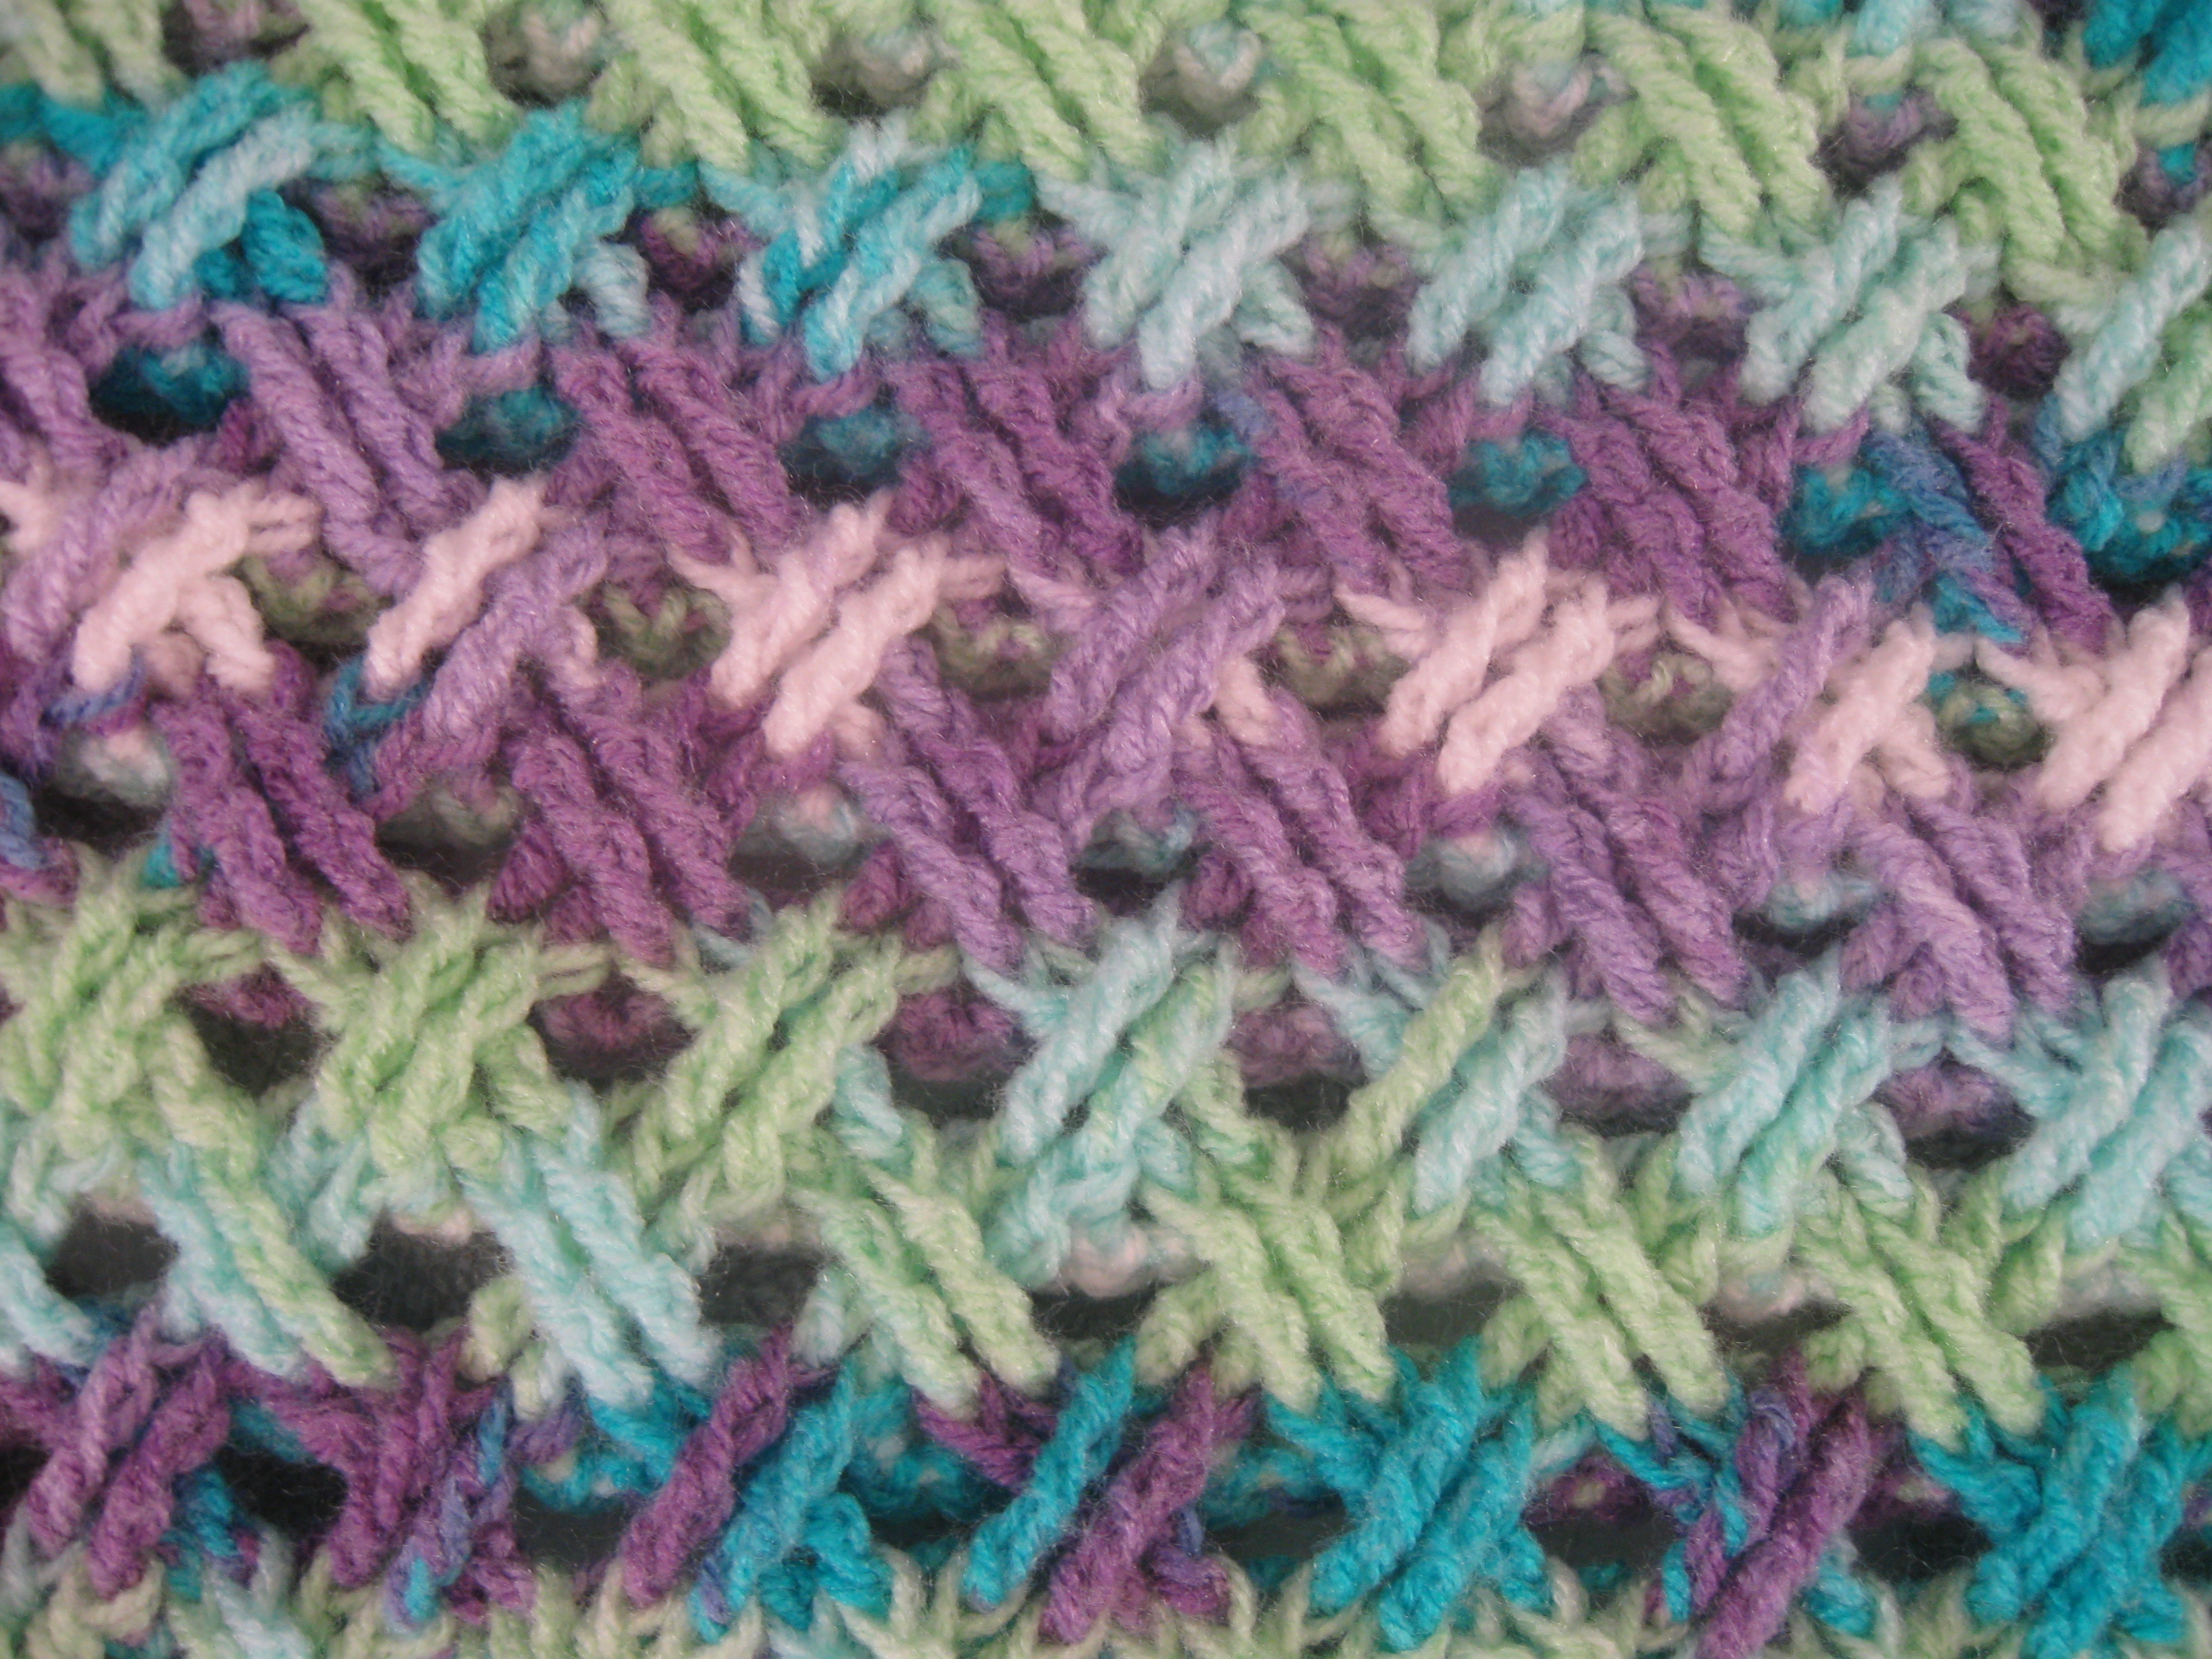 Crochet Afghan Stitch Elegant Meladora S Creations – Interweave Cable Celtic Weave Of Attractive 40 Ideas Crochet Afghan Stitch